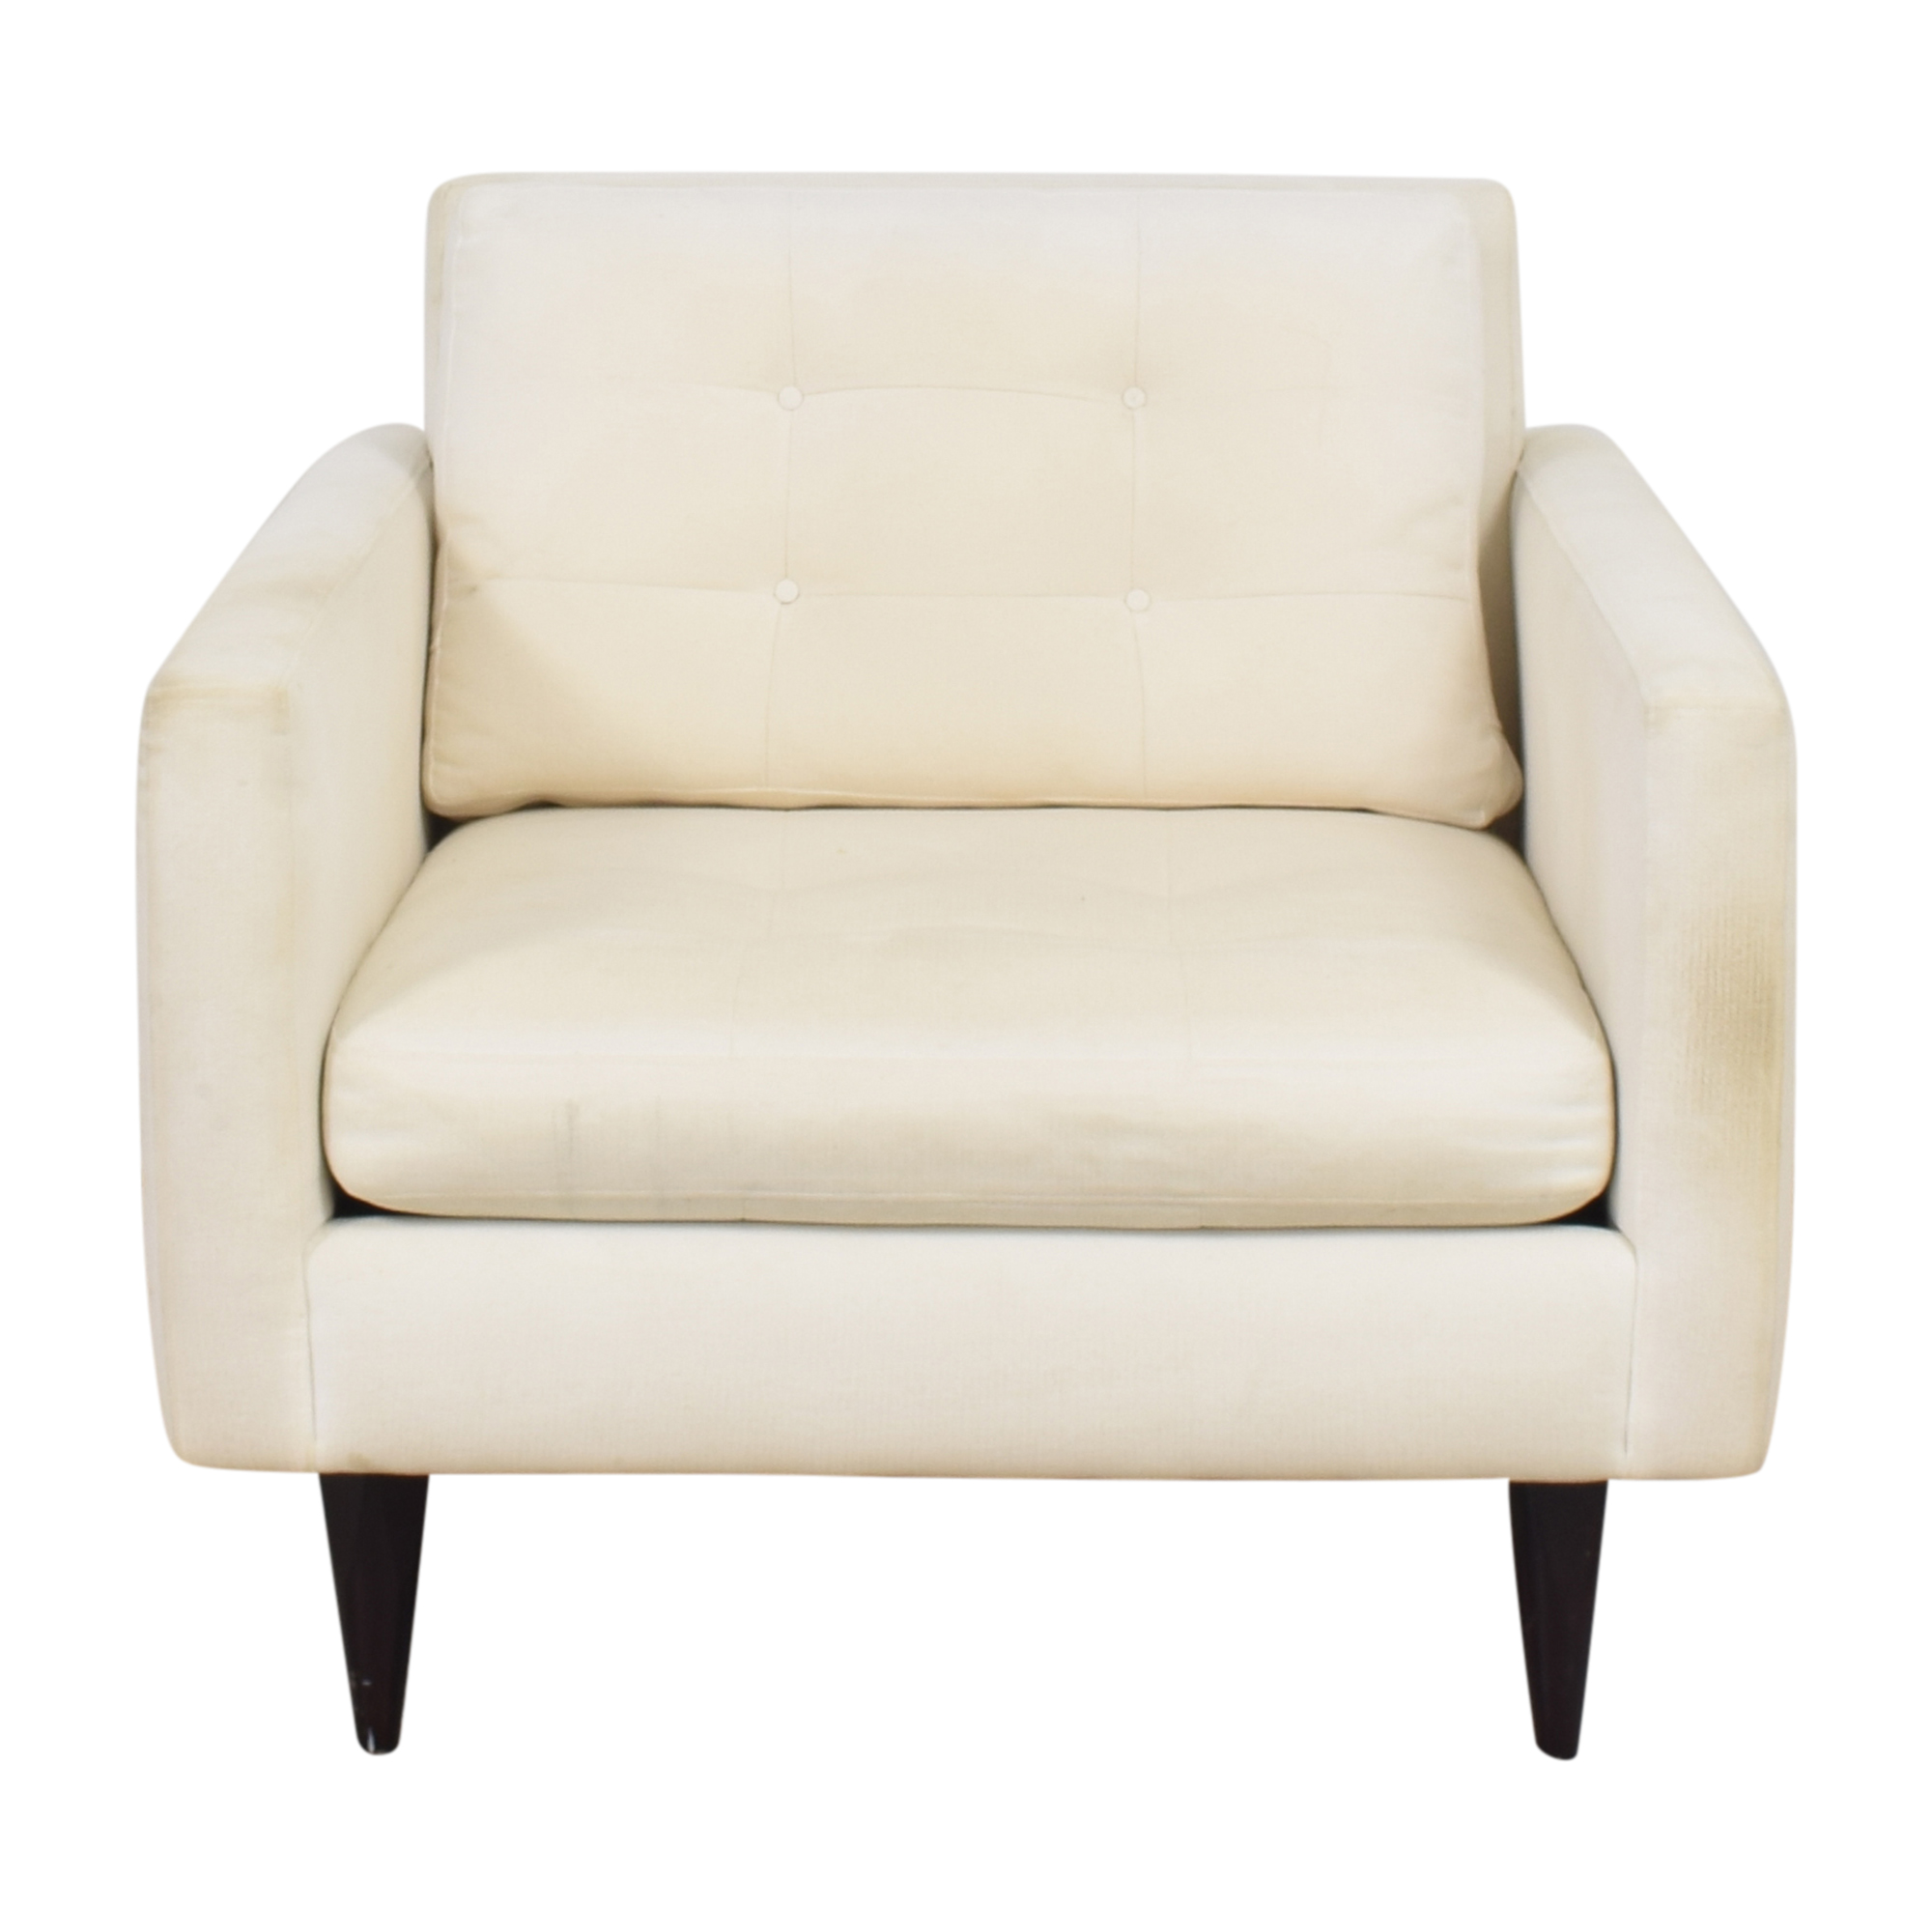 shop Crate & Barrel Petrie Midcentury Chair Crate & Barrel Accent Chairs